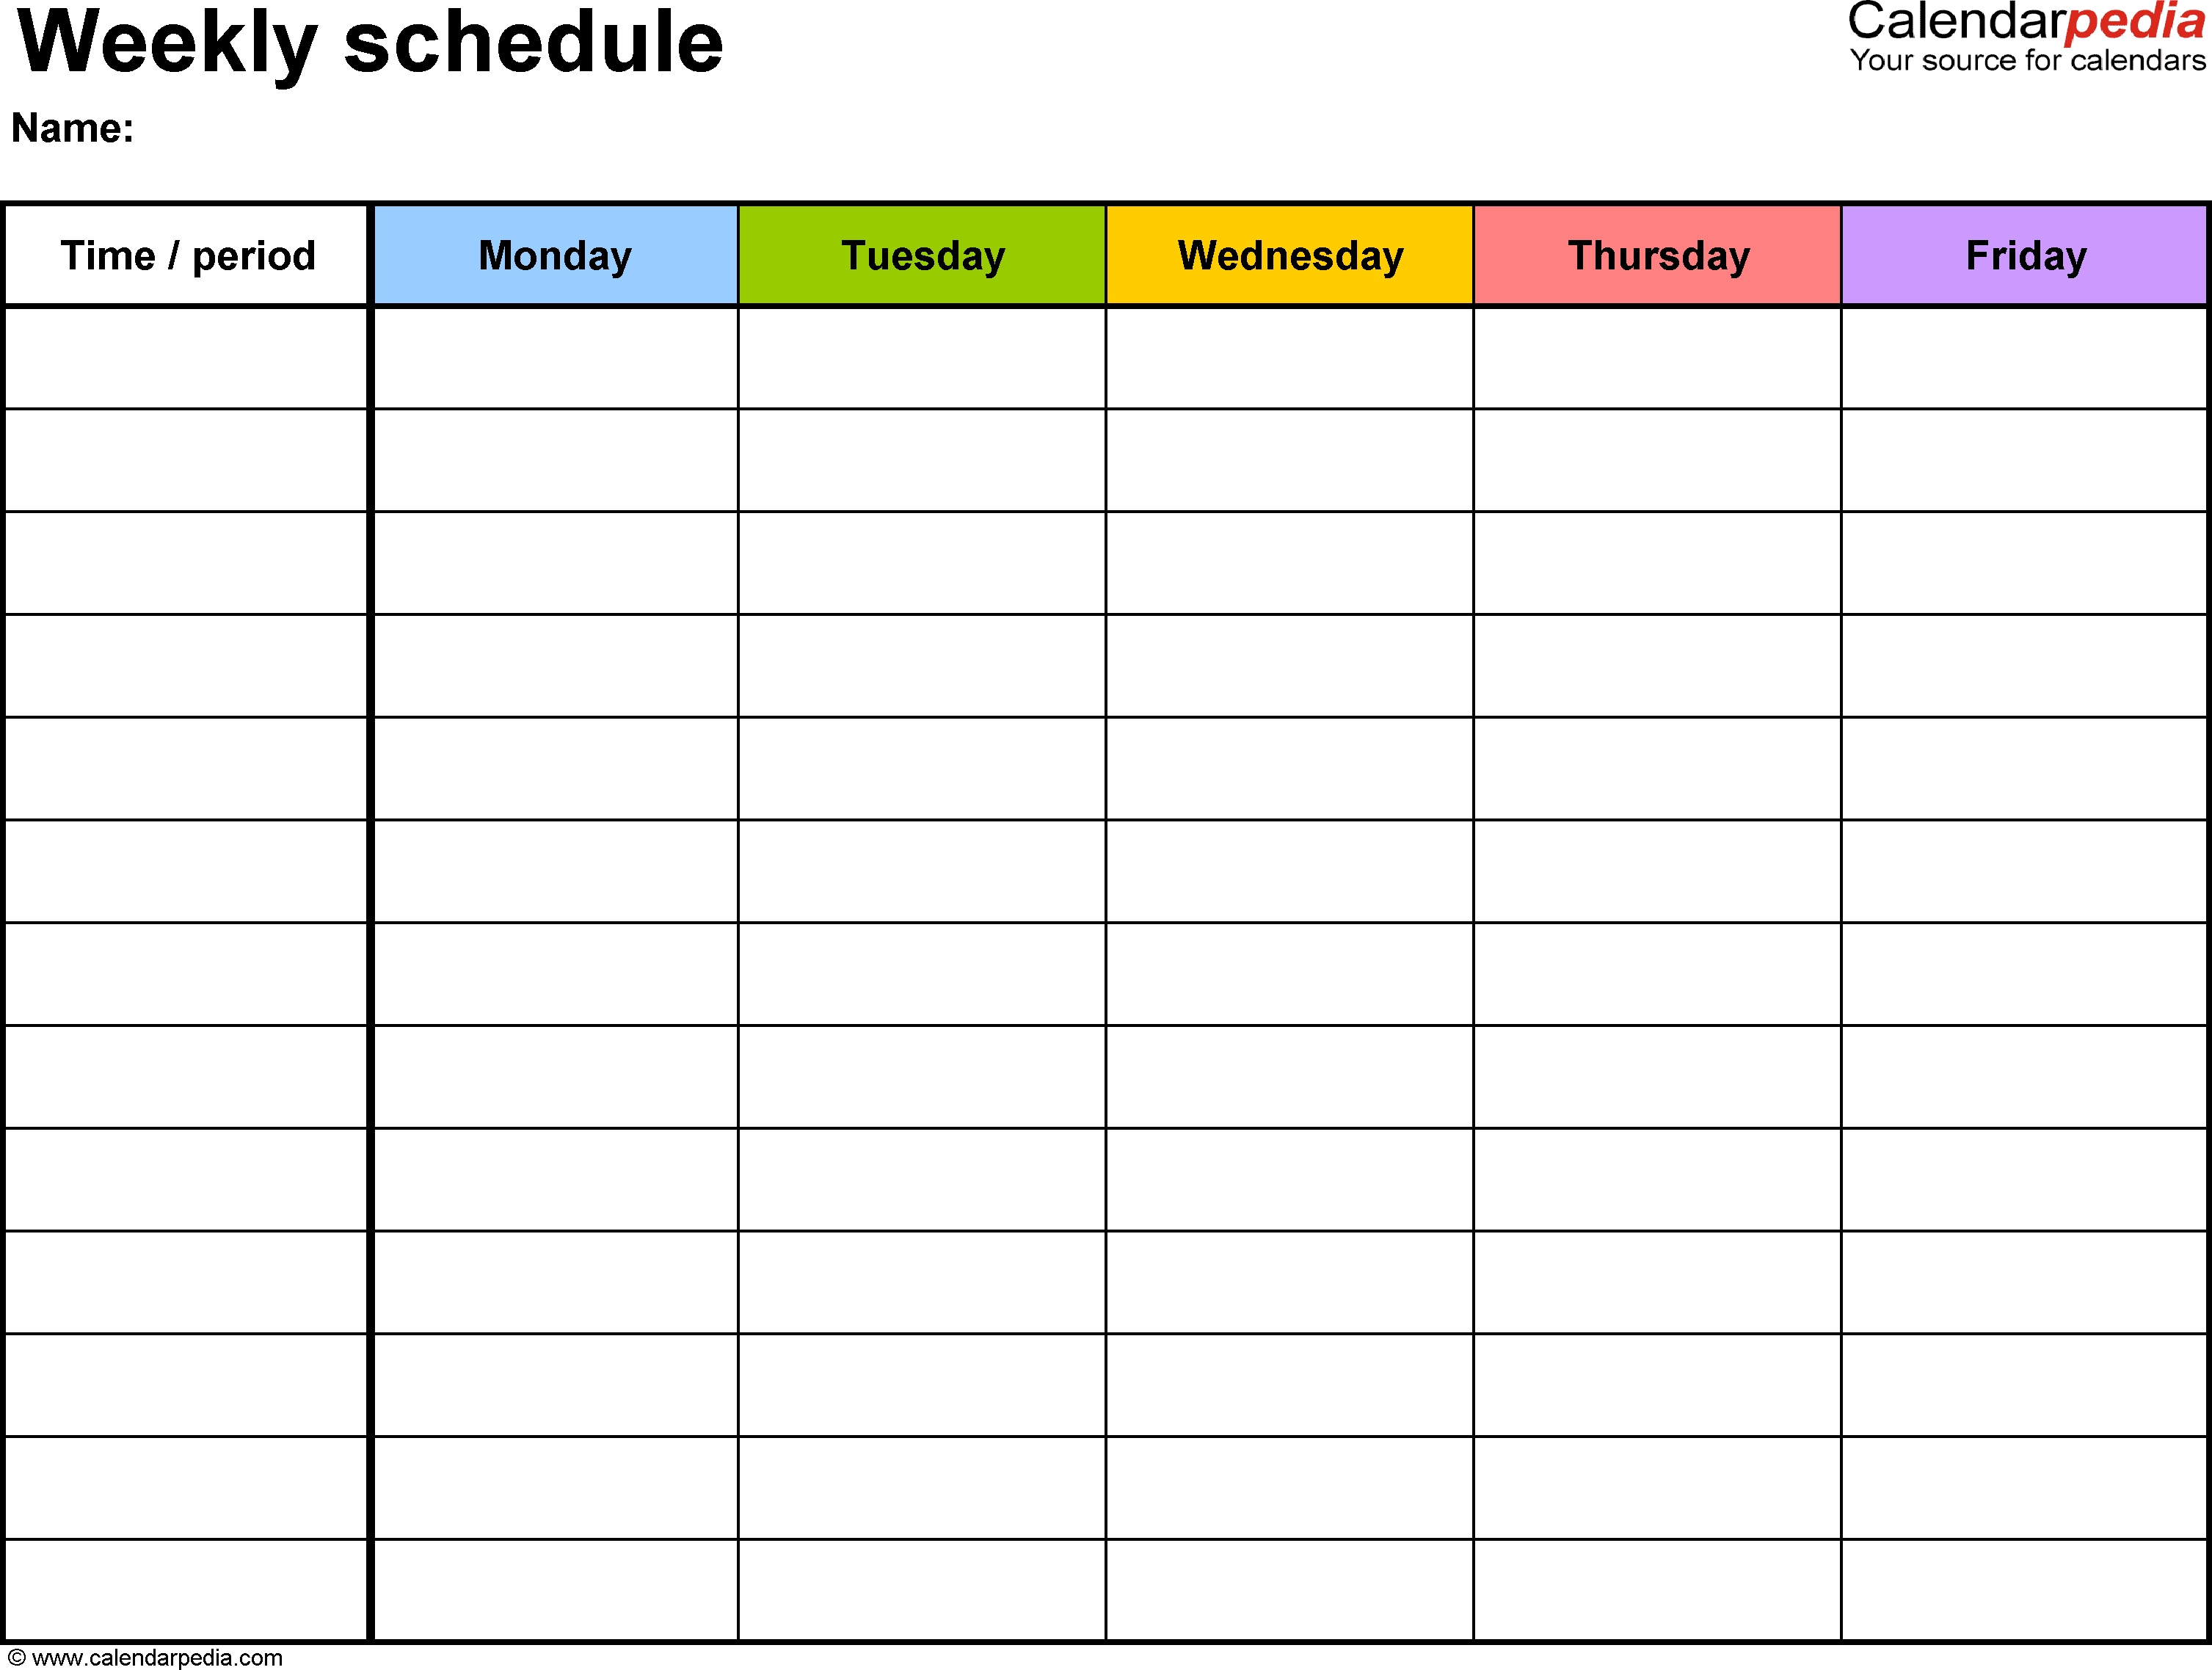 Free Weekly Schedule Templates For Excel - 18 Templates  1 Week Vacation Calendar Printable